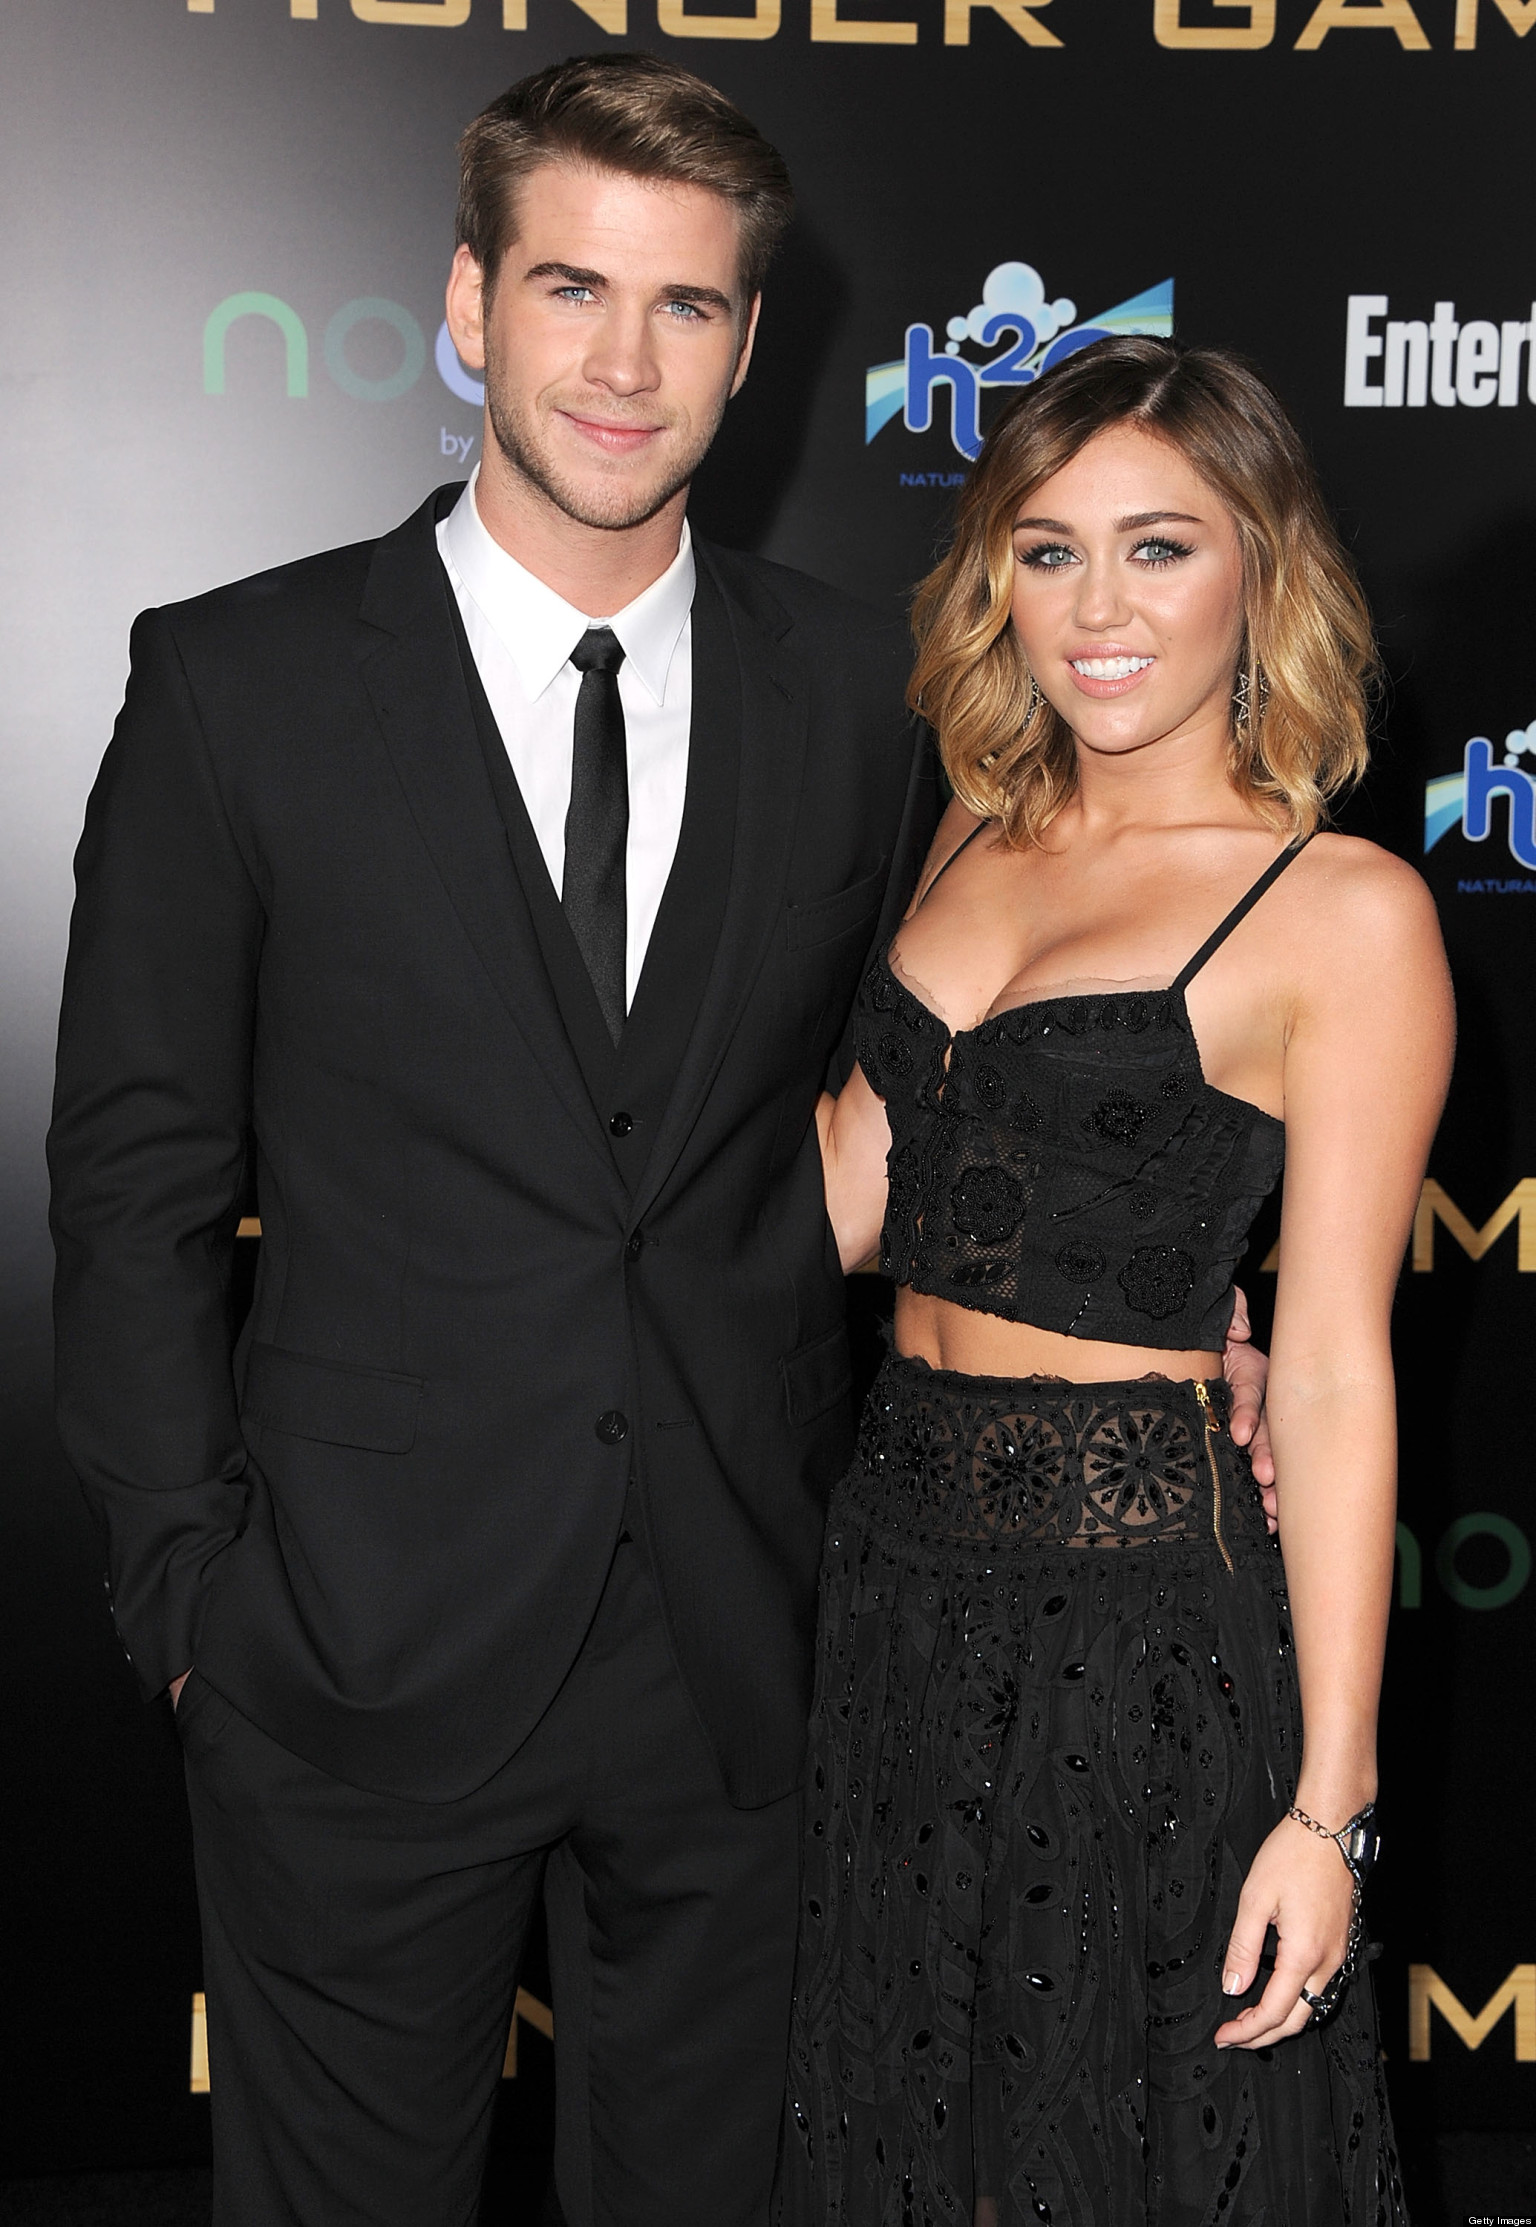 miley cyrus and liam hemsworth dating 2014 Liam hemsworth and miley cyrus have been engaged for 11 months they started dating in aug 2009 and after 6 years were engaged in jan 2016 on screen matchups liam hemsworth and miley cyrus.